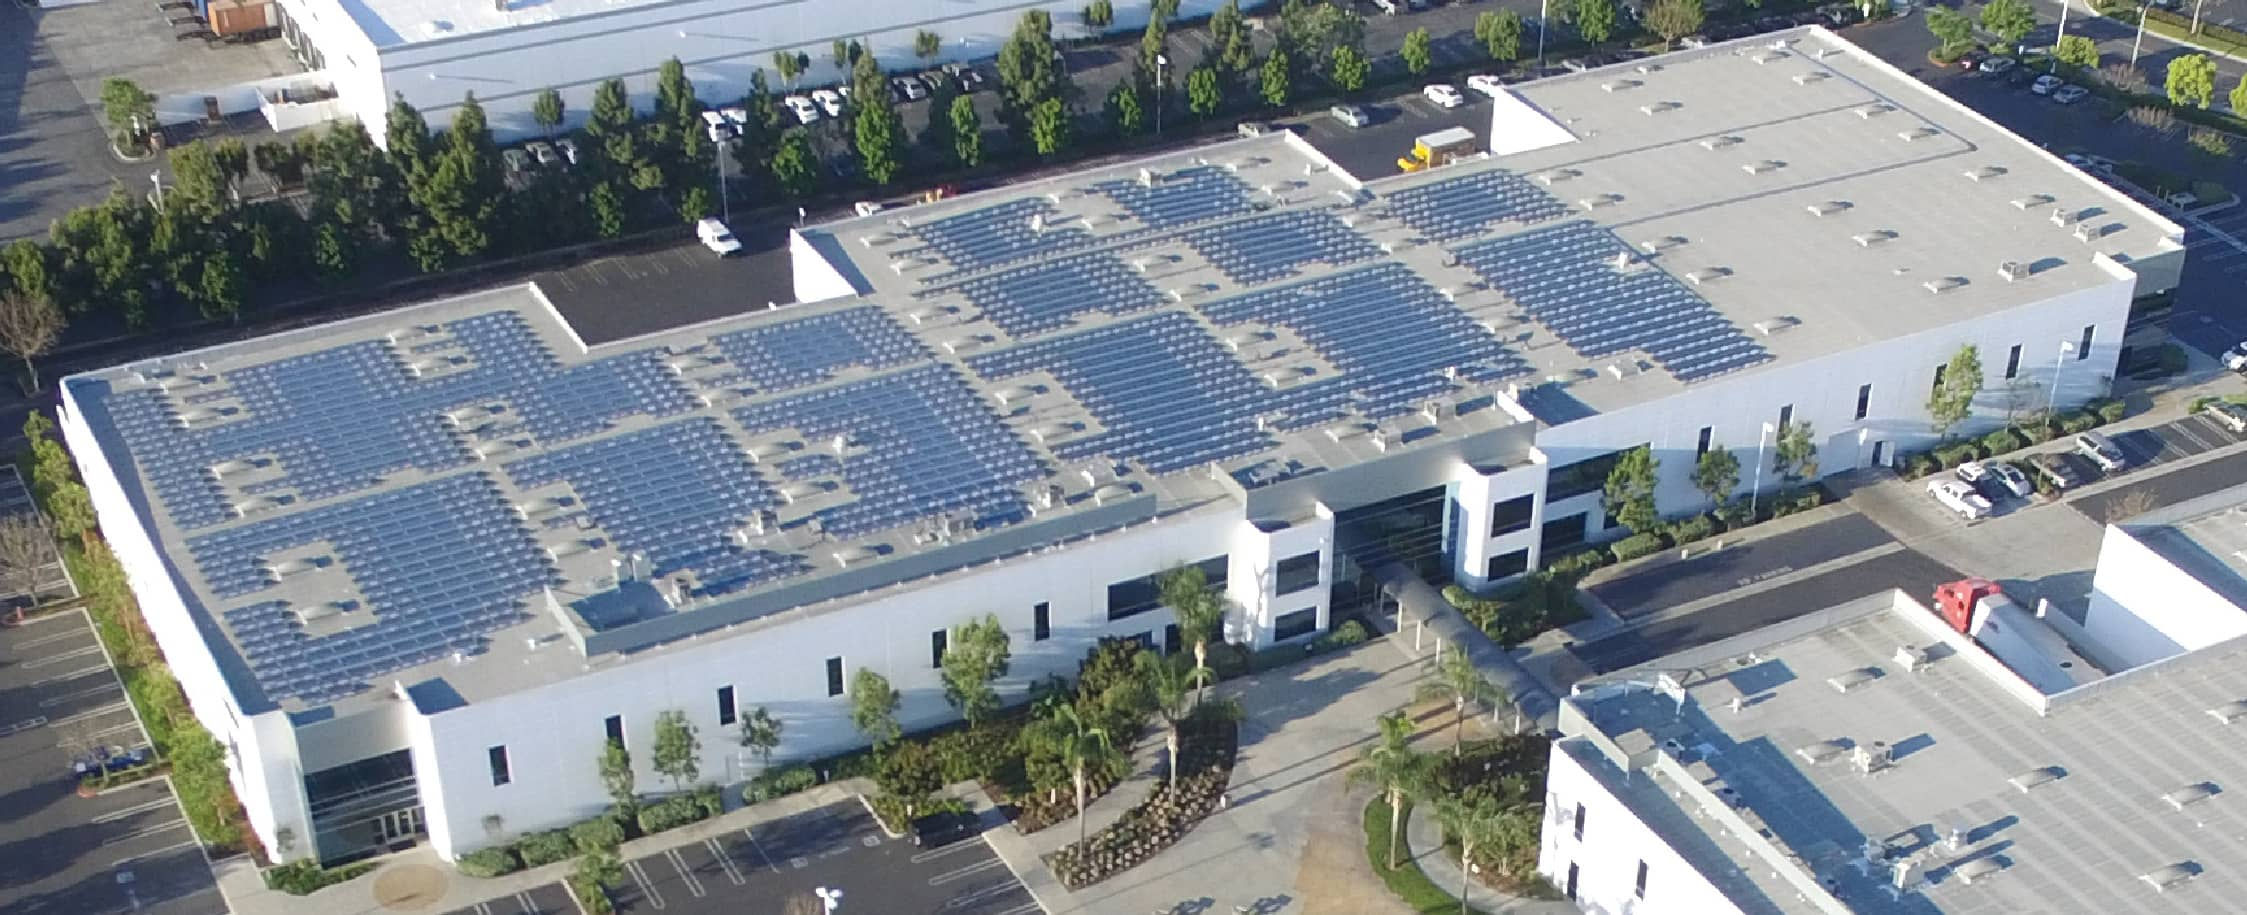 mitsubishi electric powers u s hq with its own solar. Black Bedroom Furniture Sets. Home Design Ideas